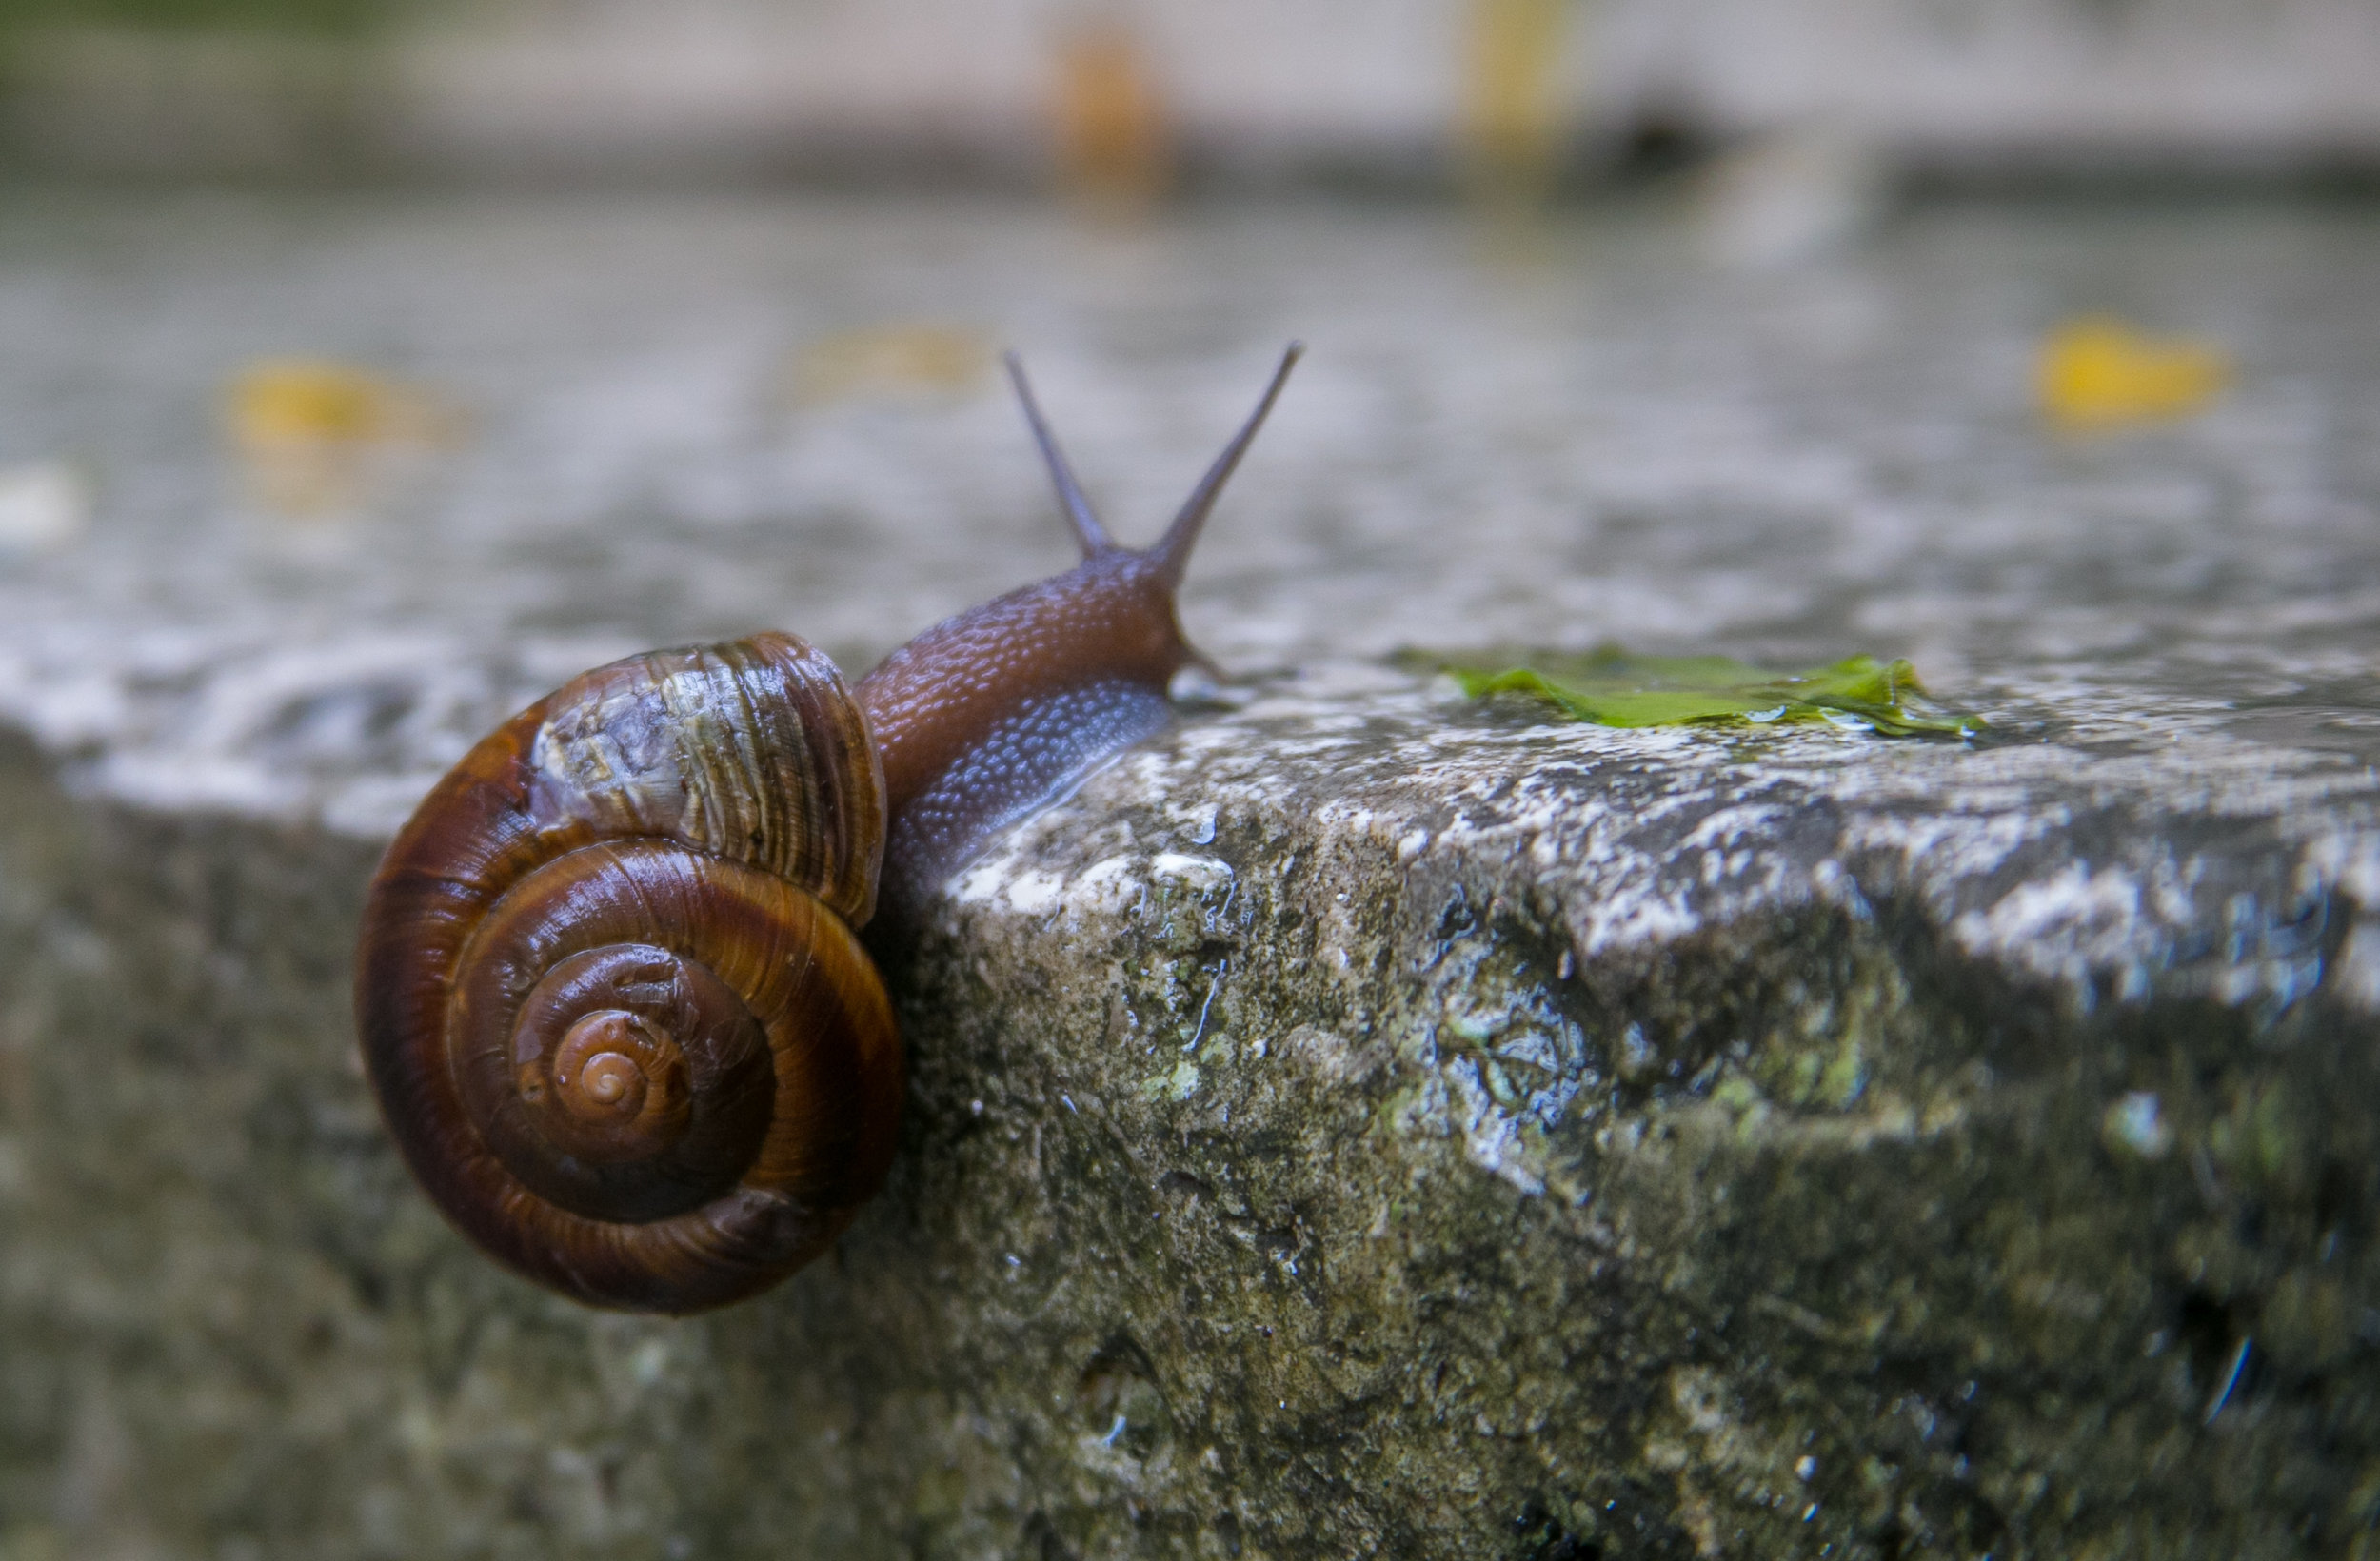 A snail found on the steps after a rain storm.